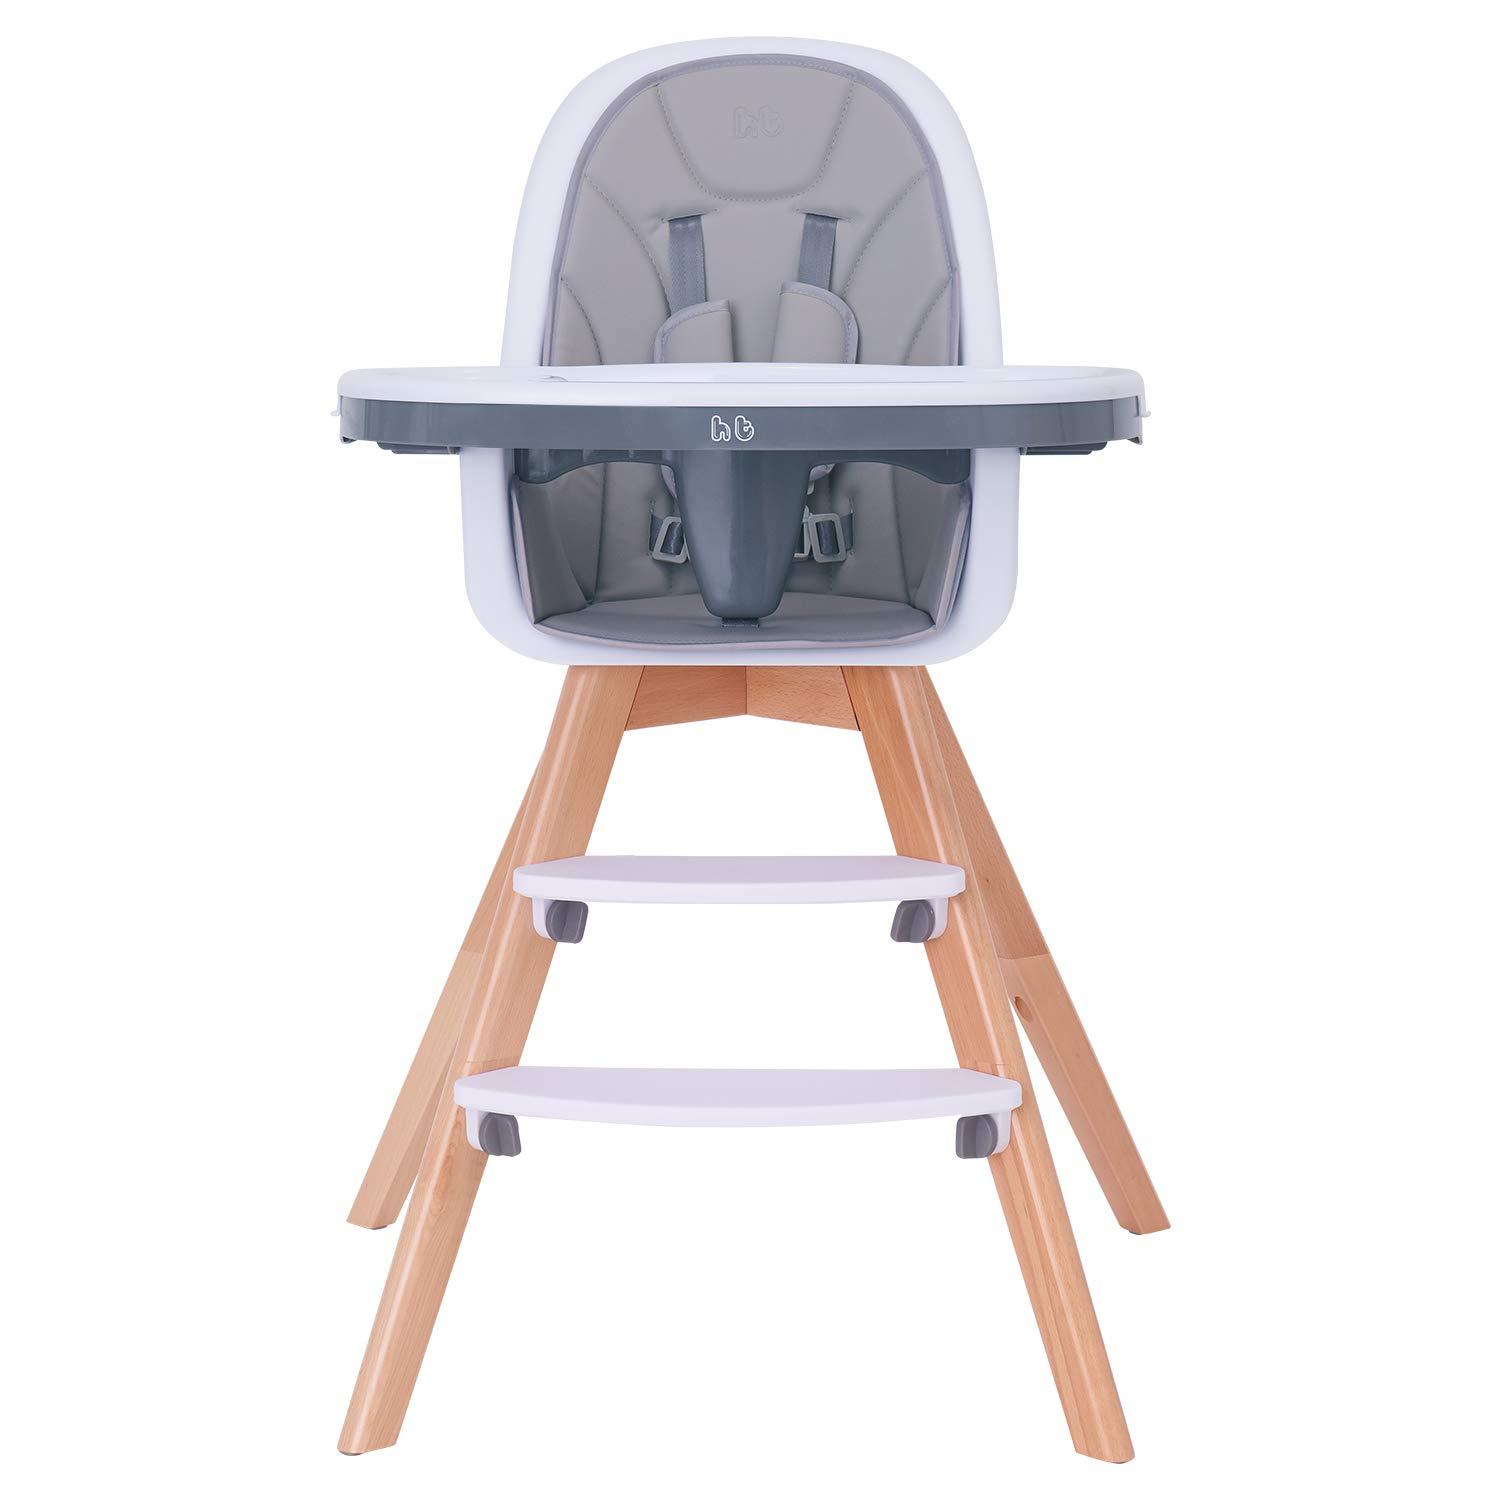 Baby High Chair, Wooden High Chair with Removable Tray and Adjustable Legs for Baby/Infants/Toddlers